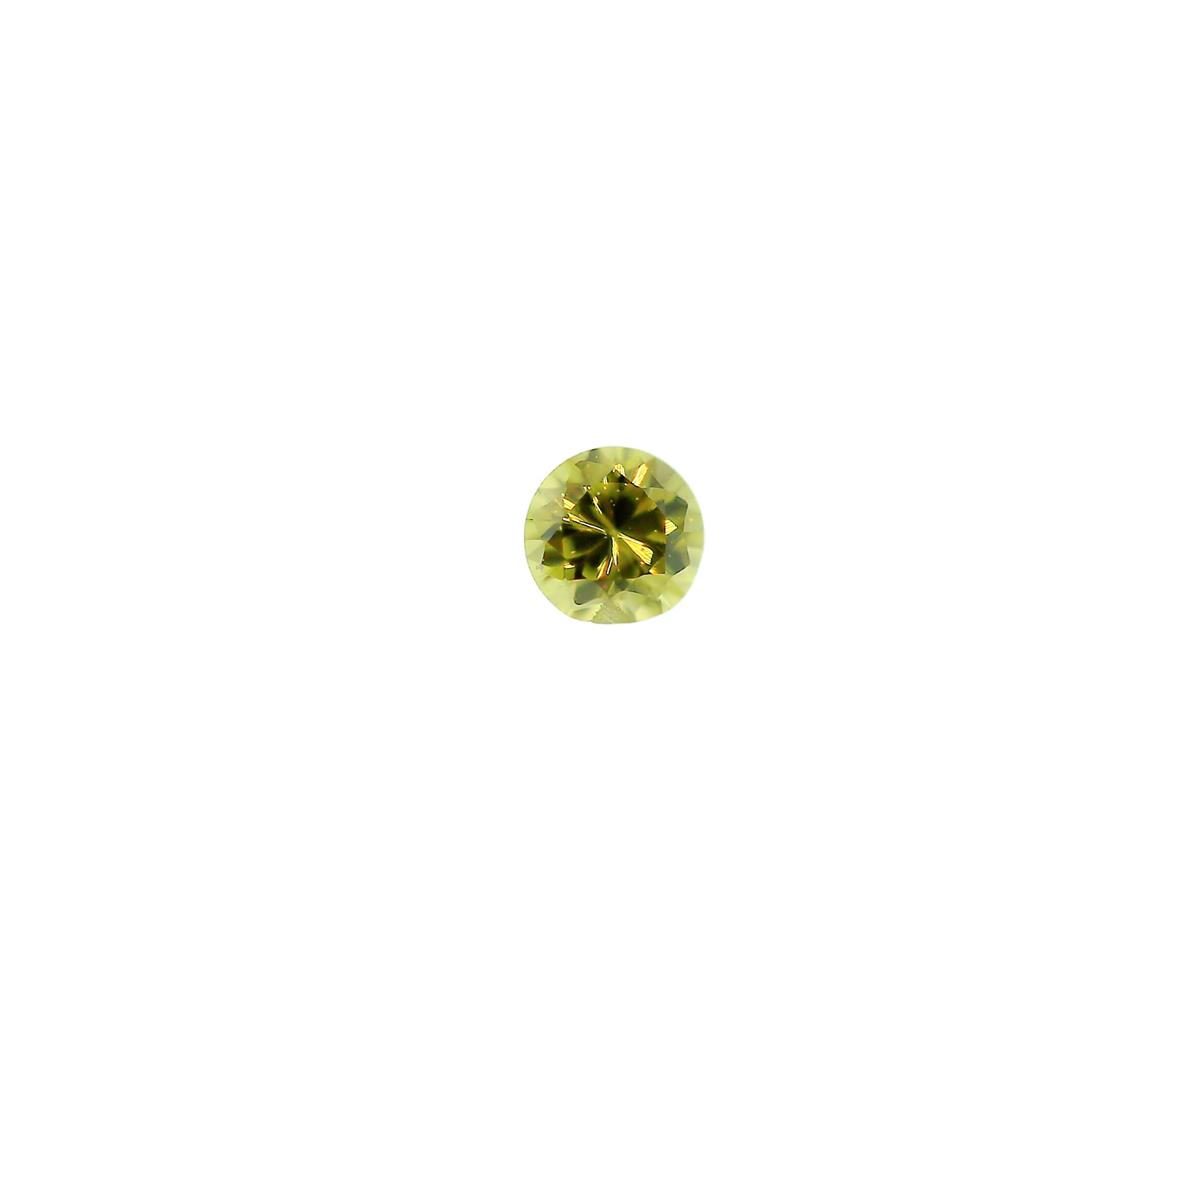 Synthetic Peridot 2.5mm Round